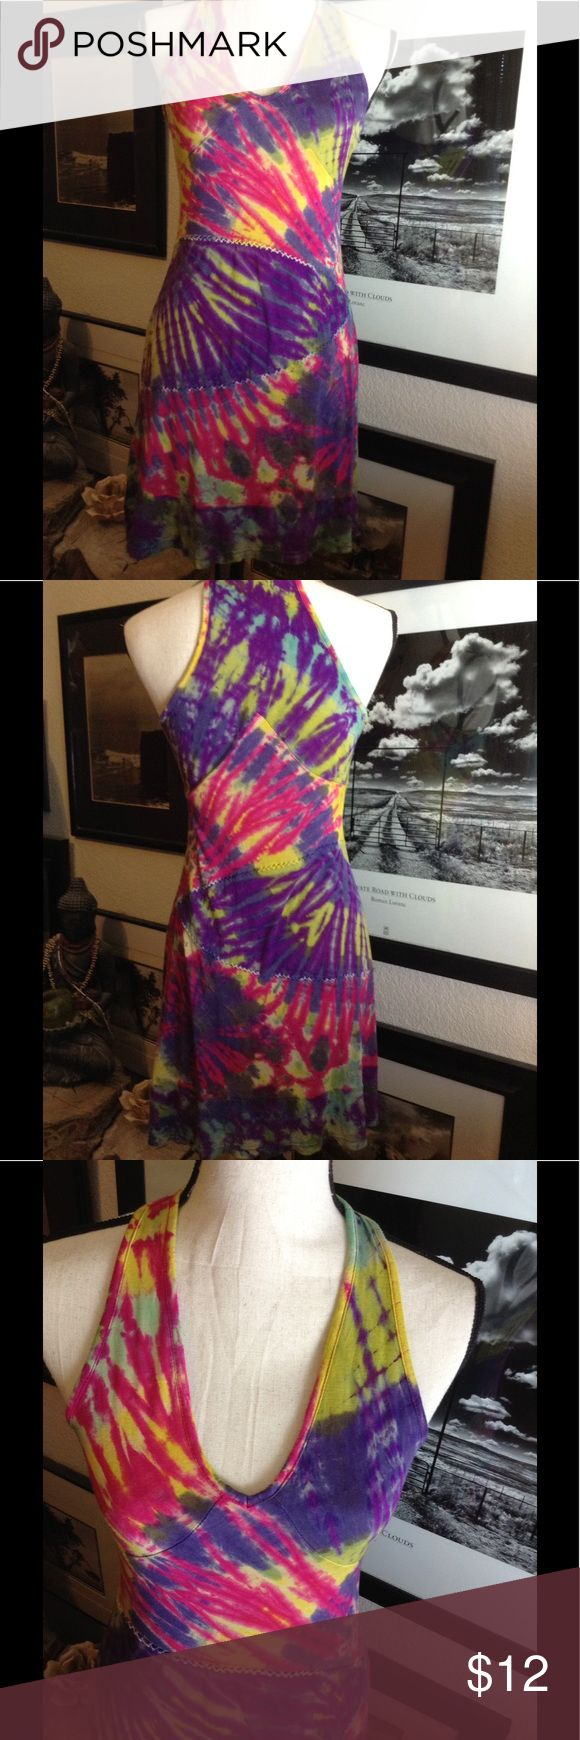 Hippie festival dress Picture this dress with a pair of birkies on a hot summer day.  Purple, green, yellow, red, racer back, pull over soft stretch, v neck. Note there is a small prick in fabric at the bottom, does not deter from its beauty. RisingINTERNATIONAL Dresses Mini